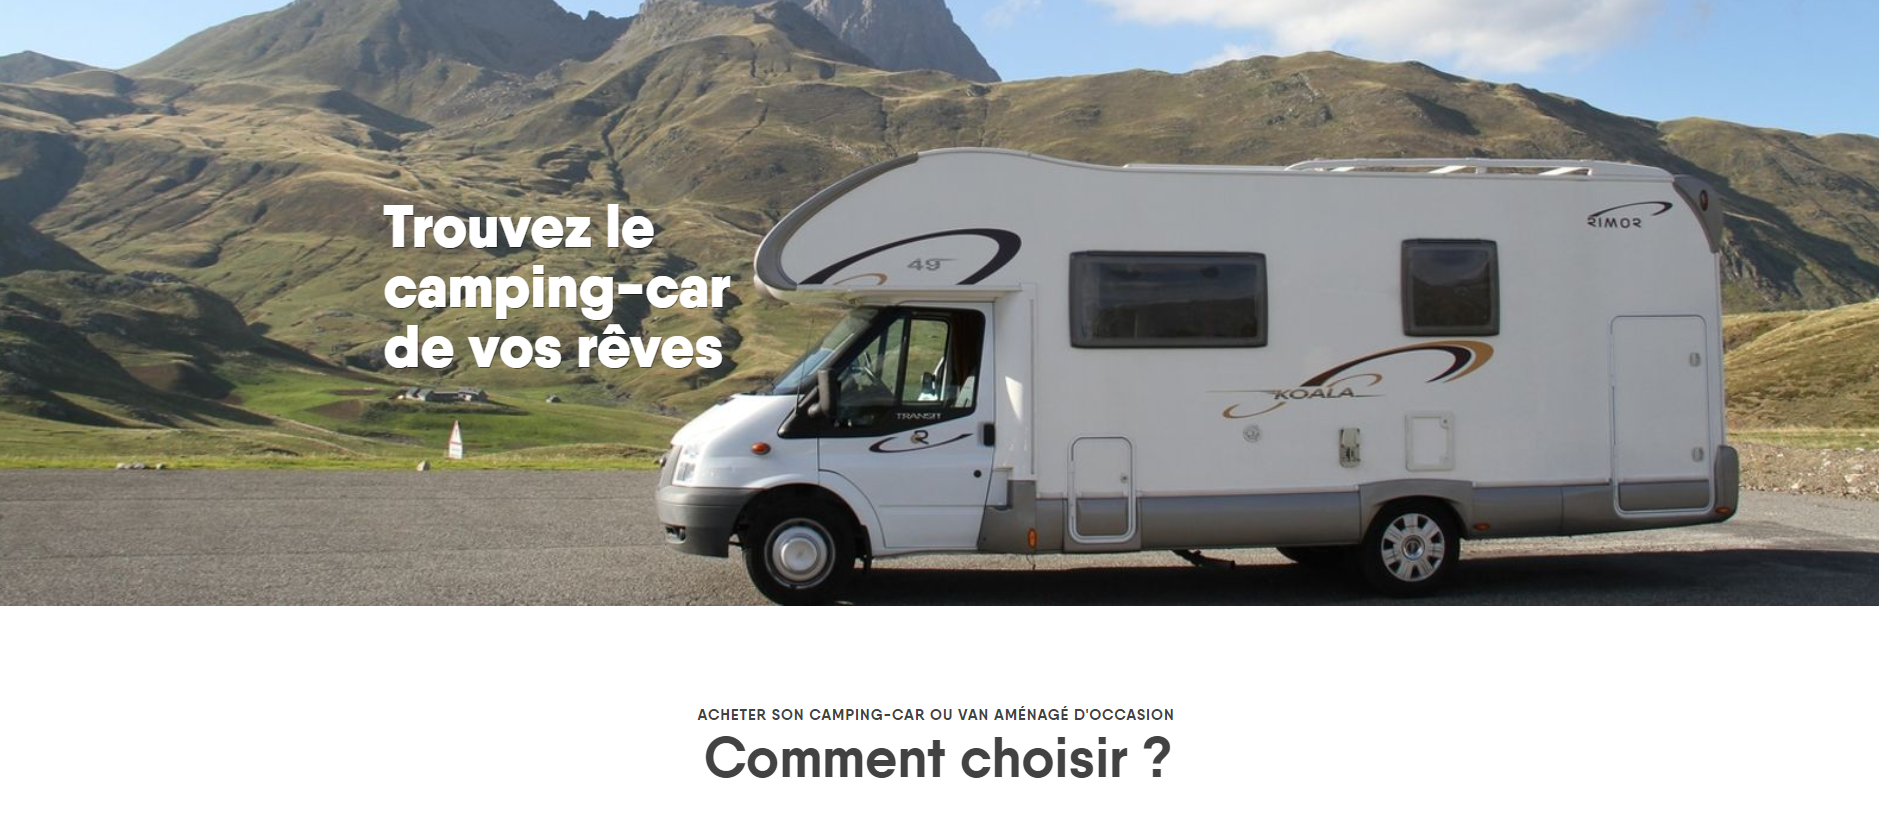 Comment choisir un camping car occasion